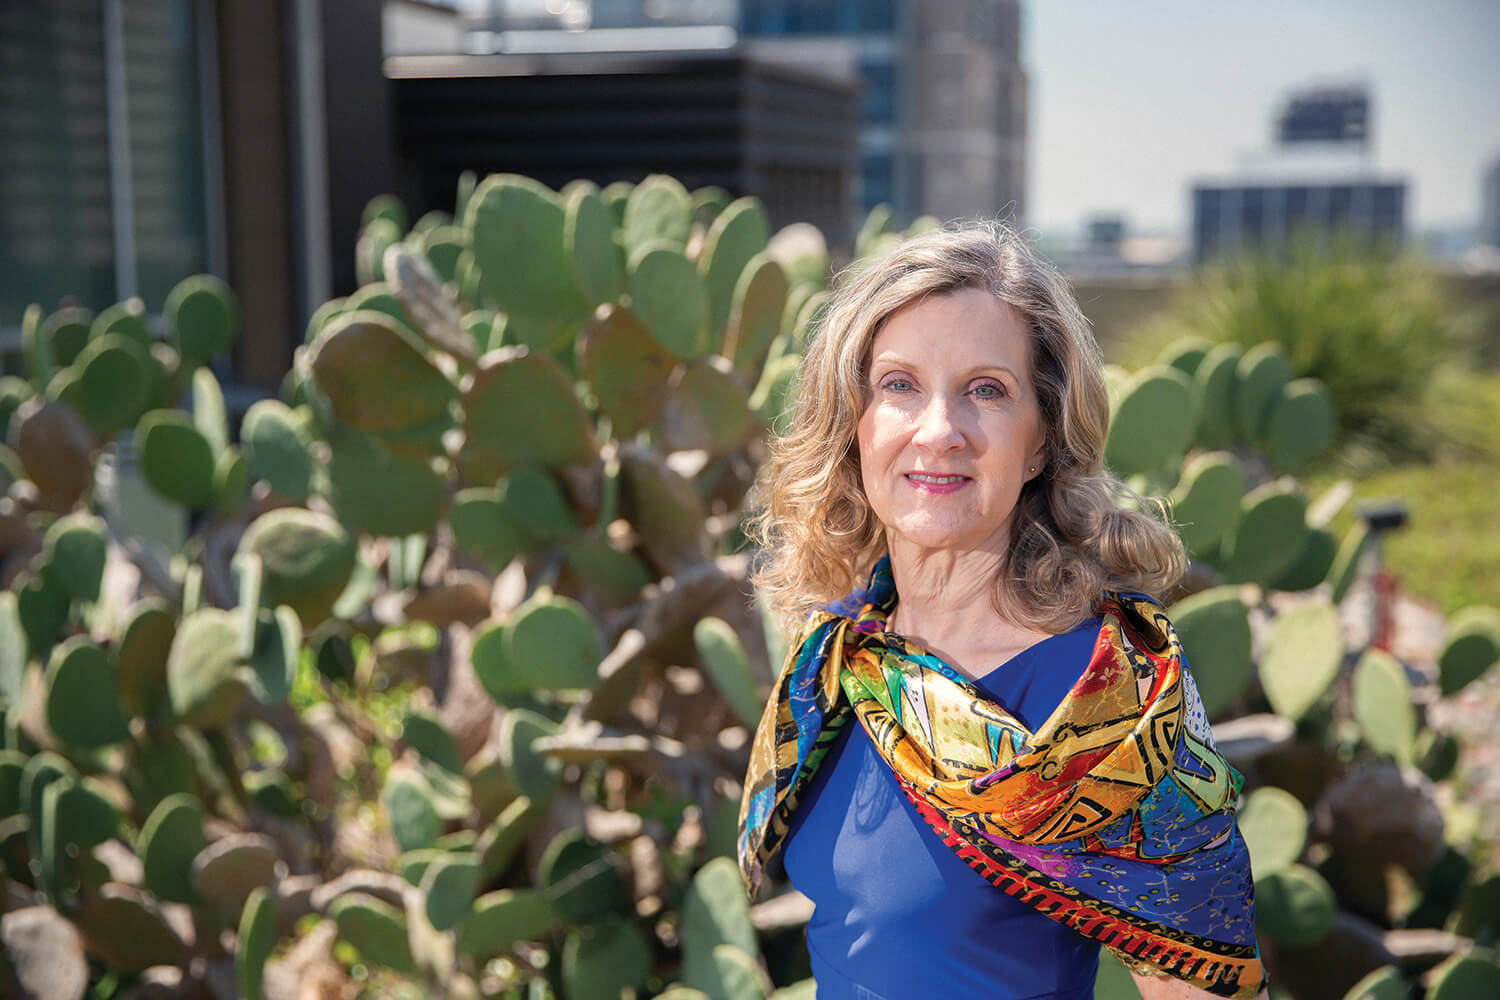 Cathy Rozmus, Ph.D., is vice dean for academic affairs at Cizik School of Nursing at UTHealth.